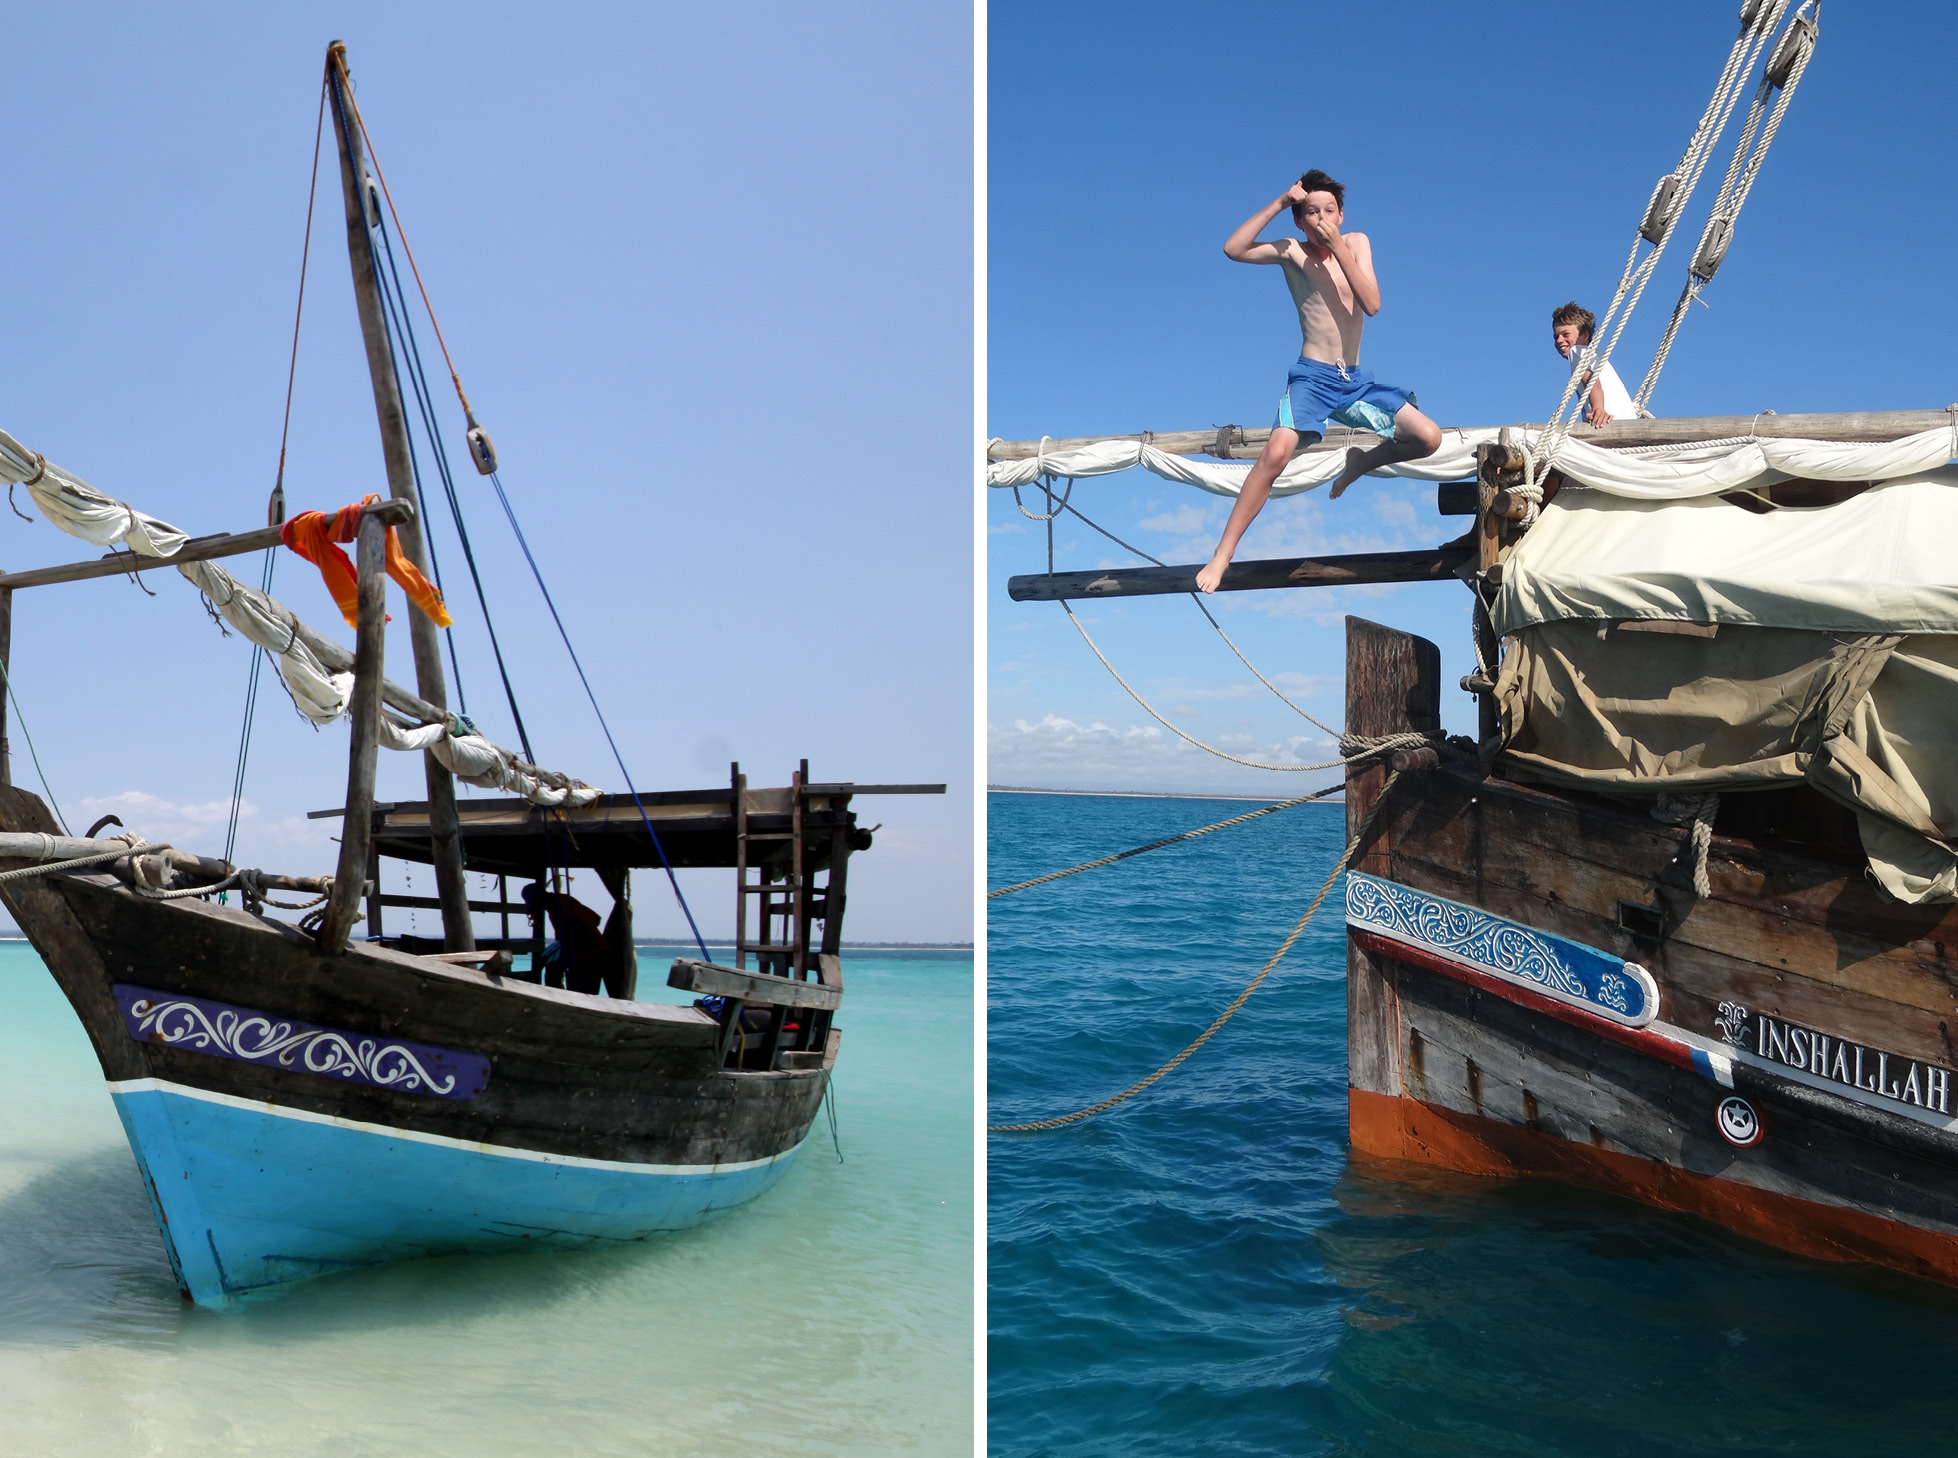 Dhow safari northern mozambique boat boy jumping